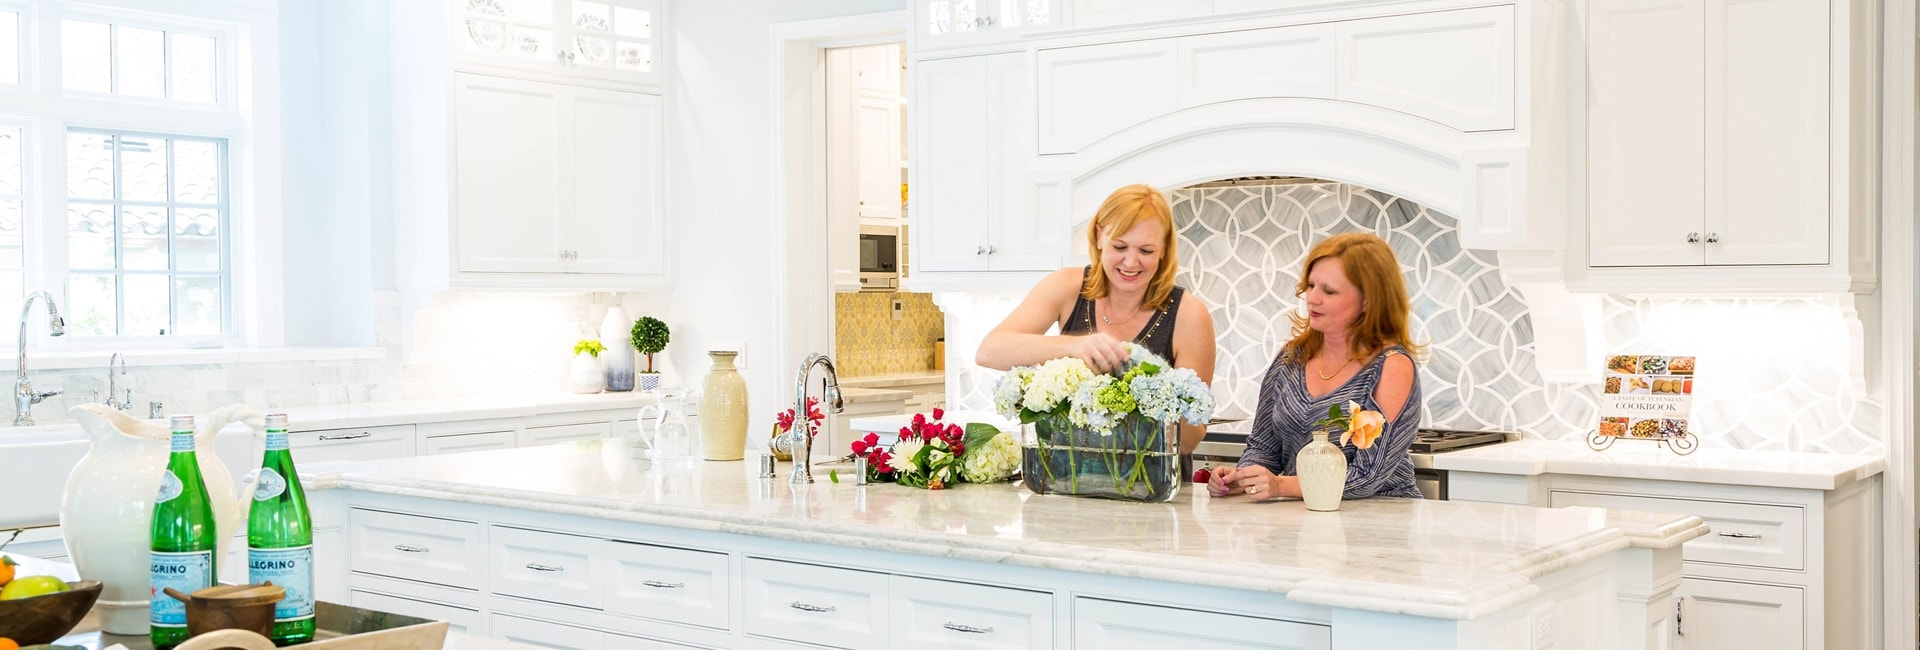 Top interior designers of Courtney Thomas Design in La Cañada